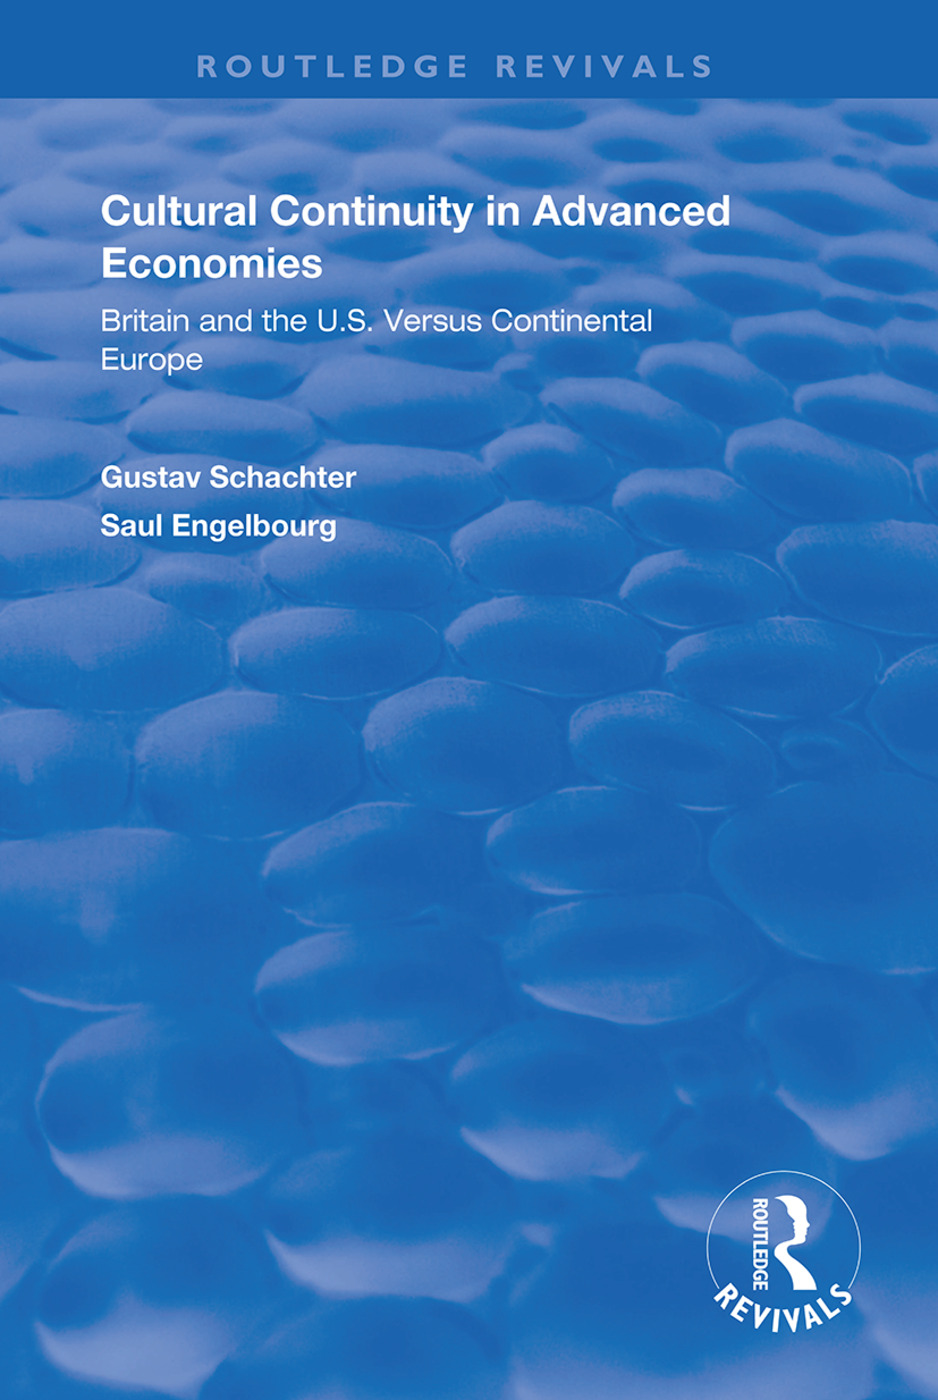 Cultural Continuity in Advanced Economies: Britain and the U.S. Versus Continental Europe book cover